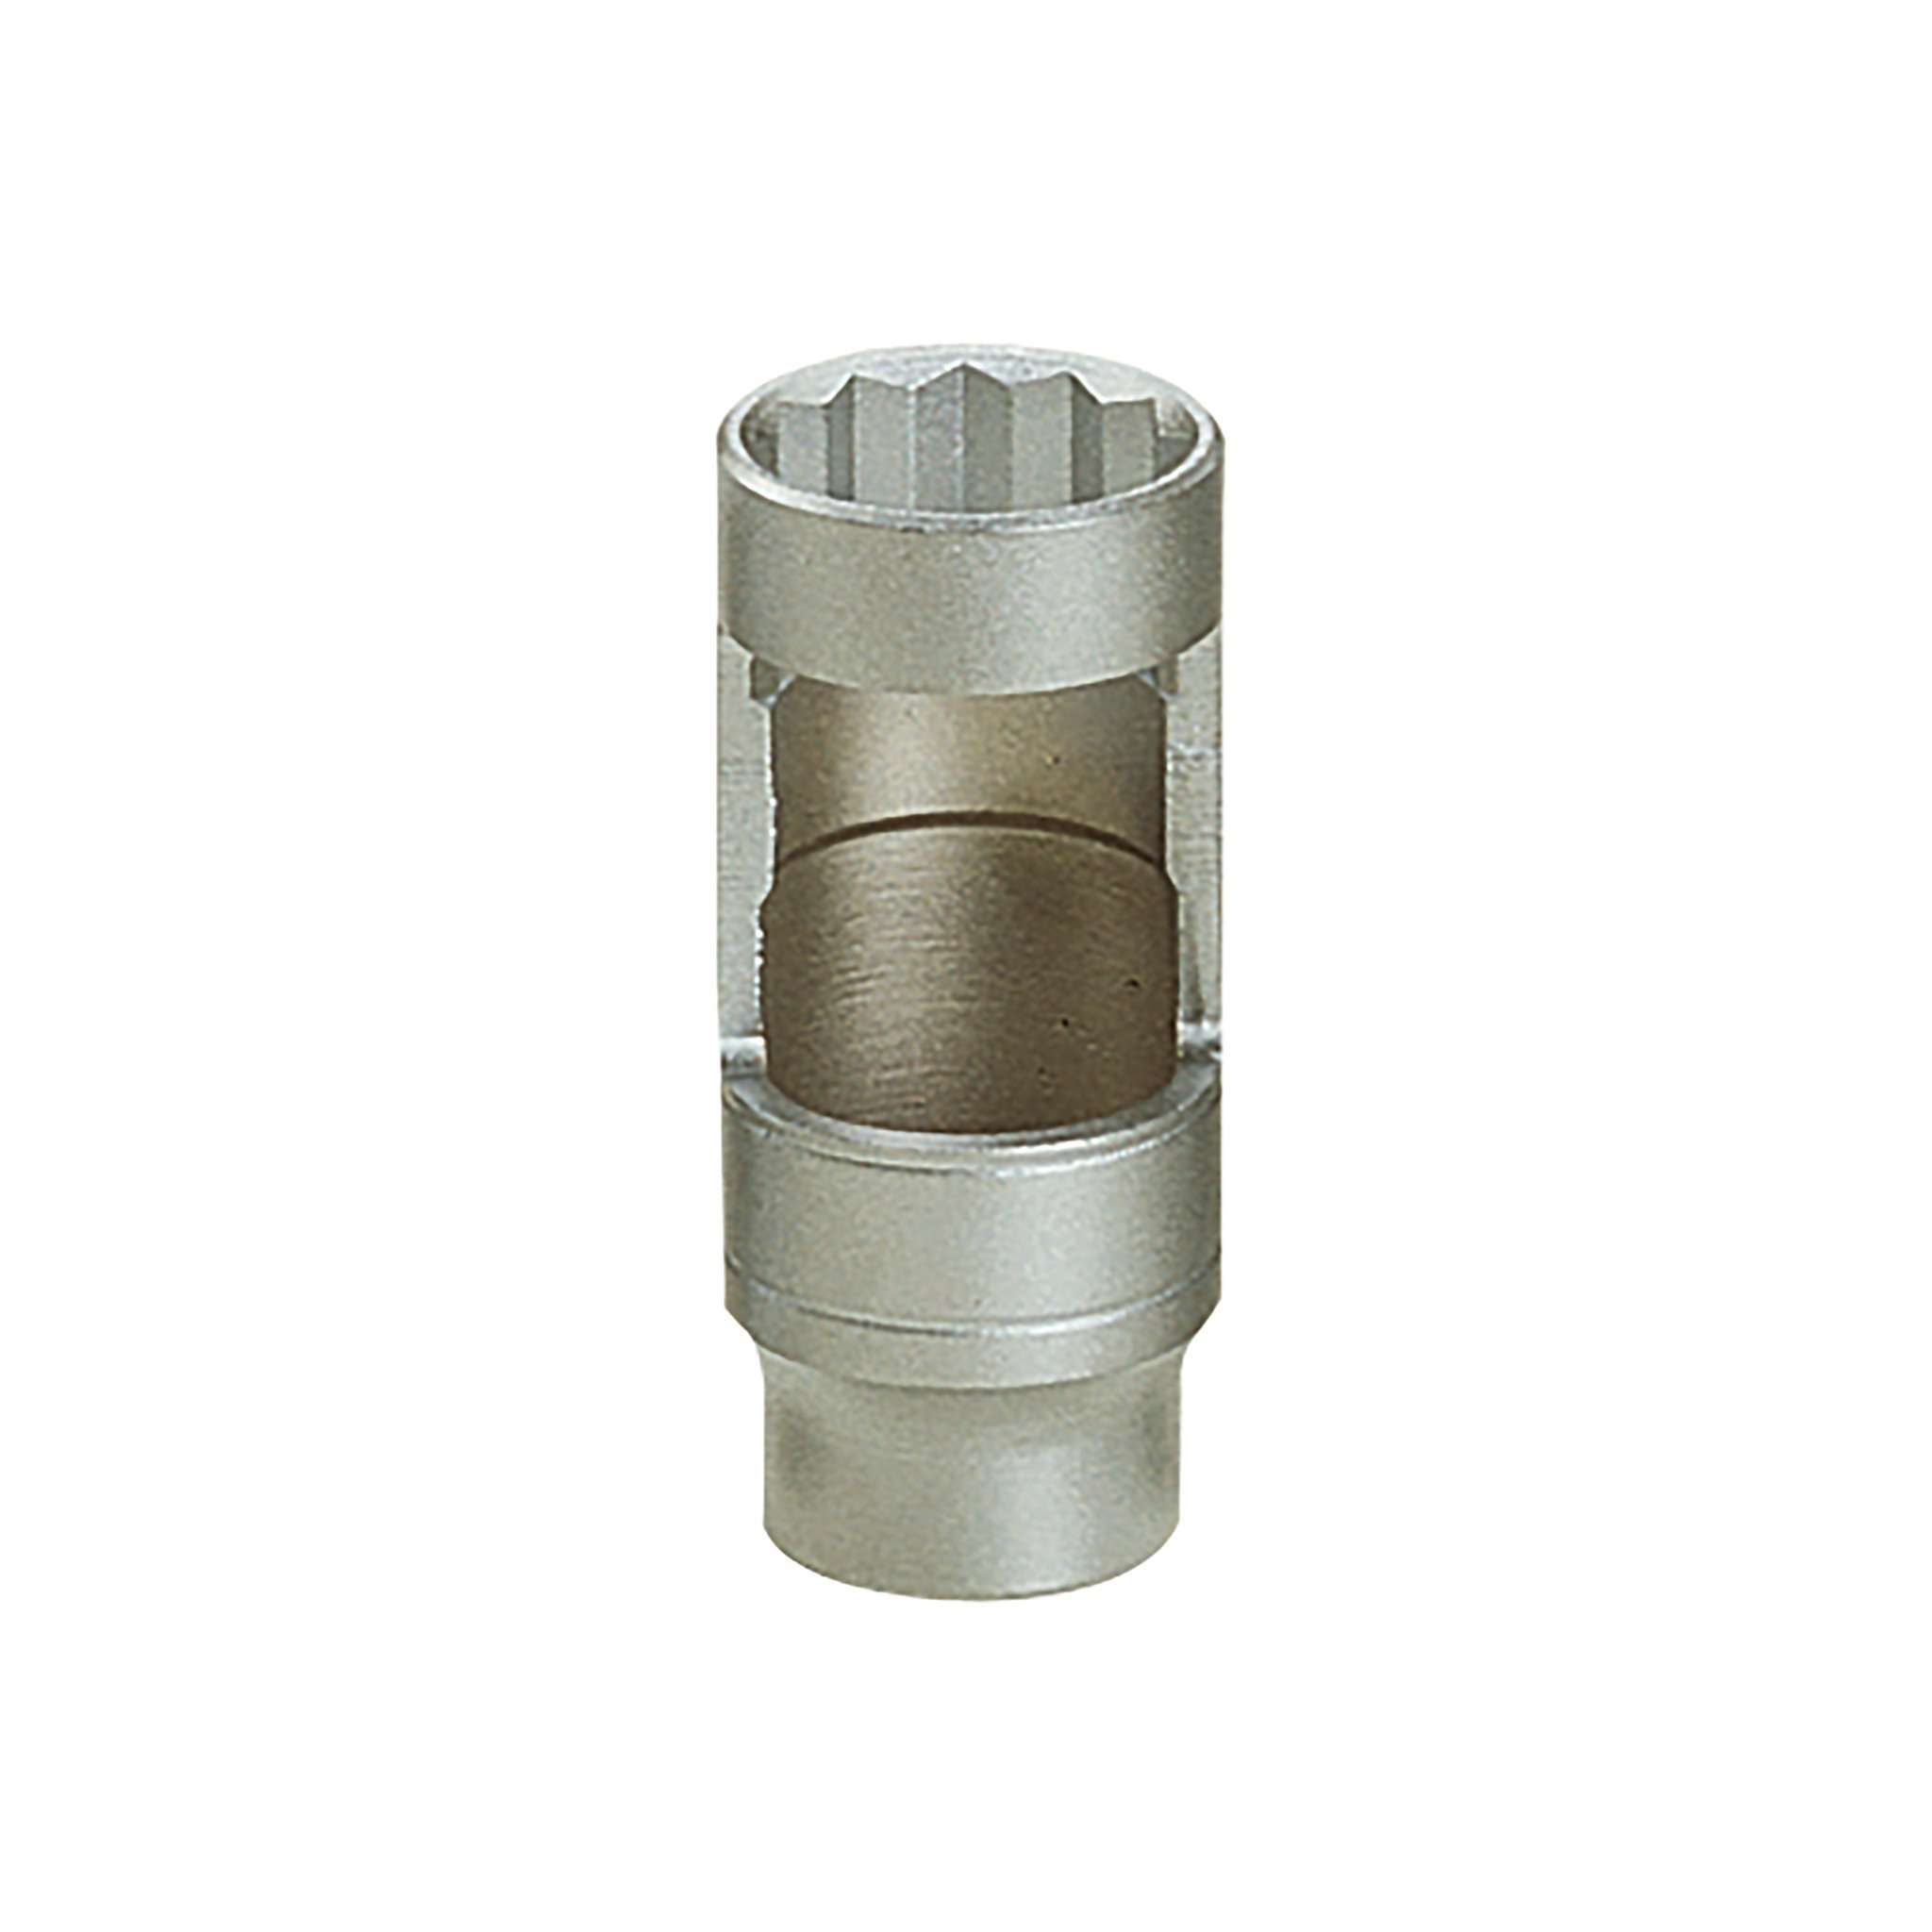 Teng Tools 1/2 Inch Drive 27mm Injector Socket - AT360